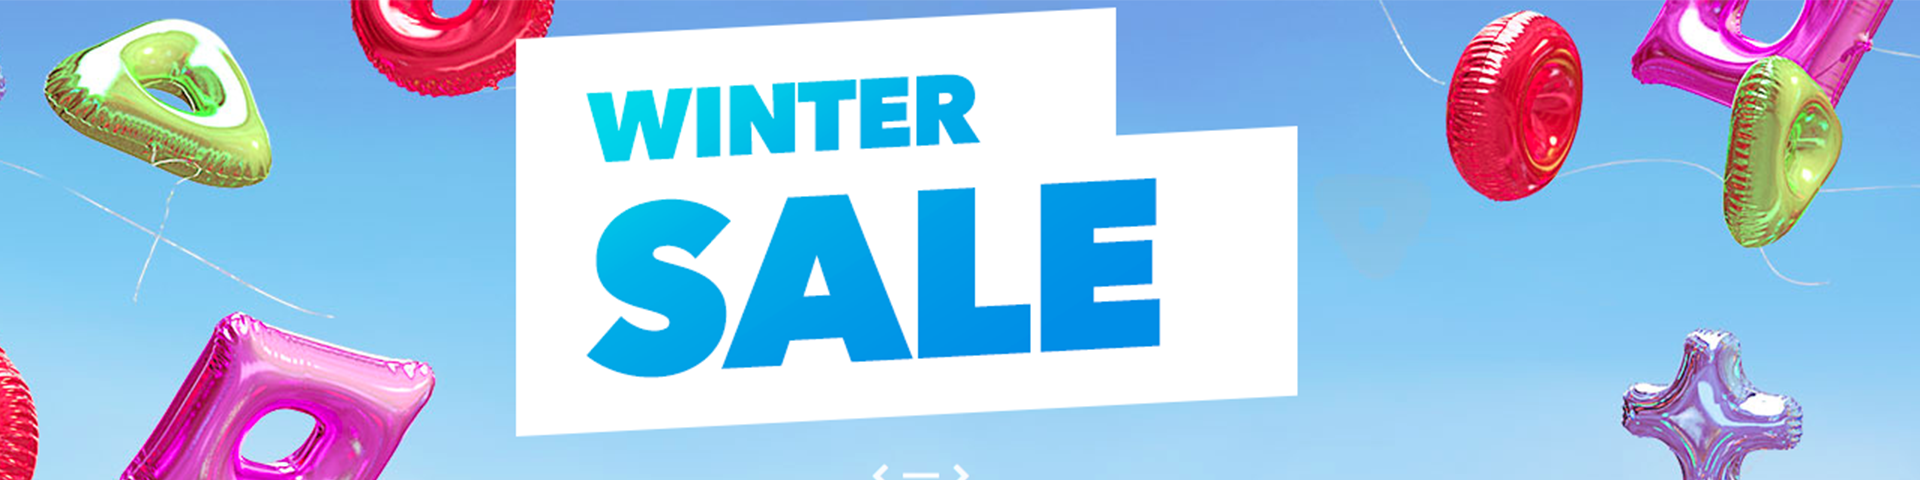 Winter Sale Article.png